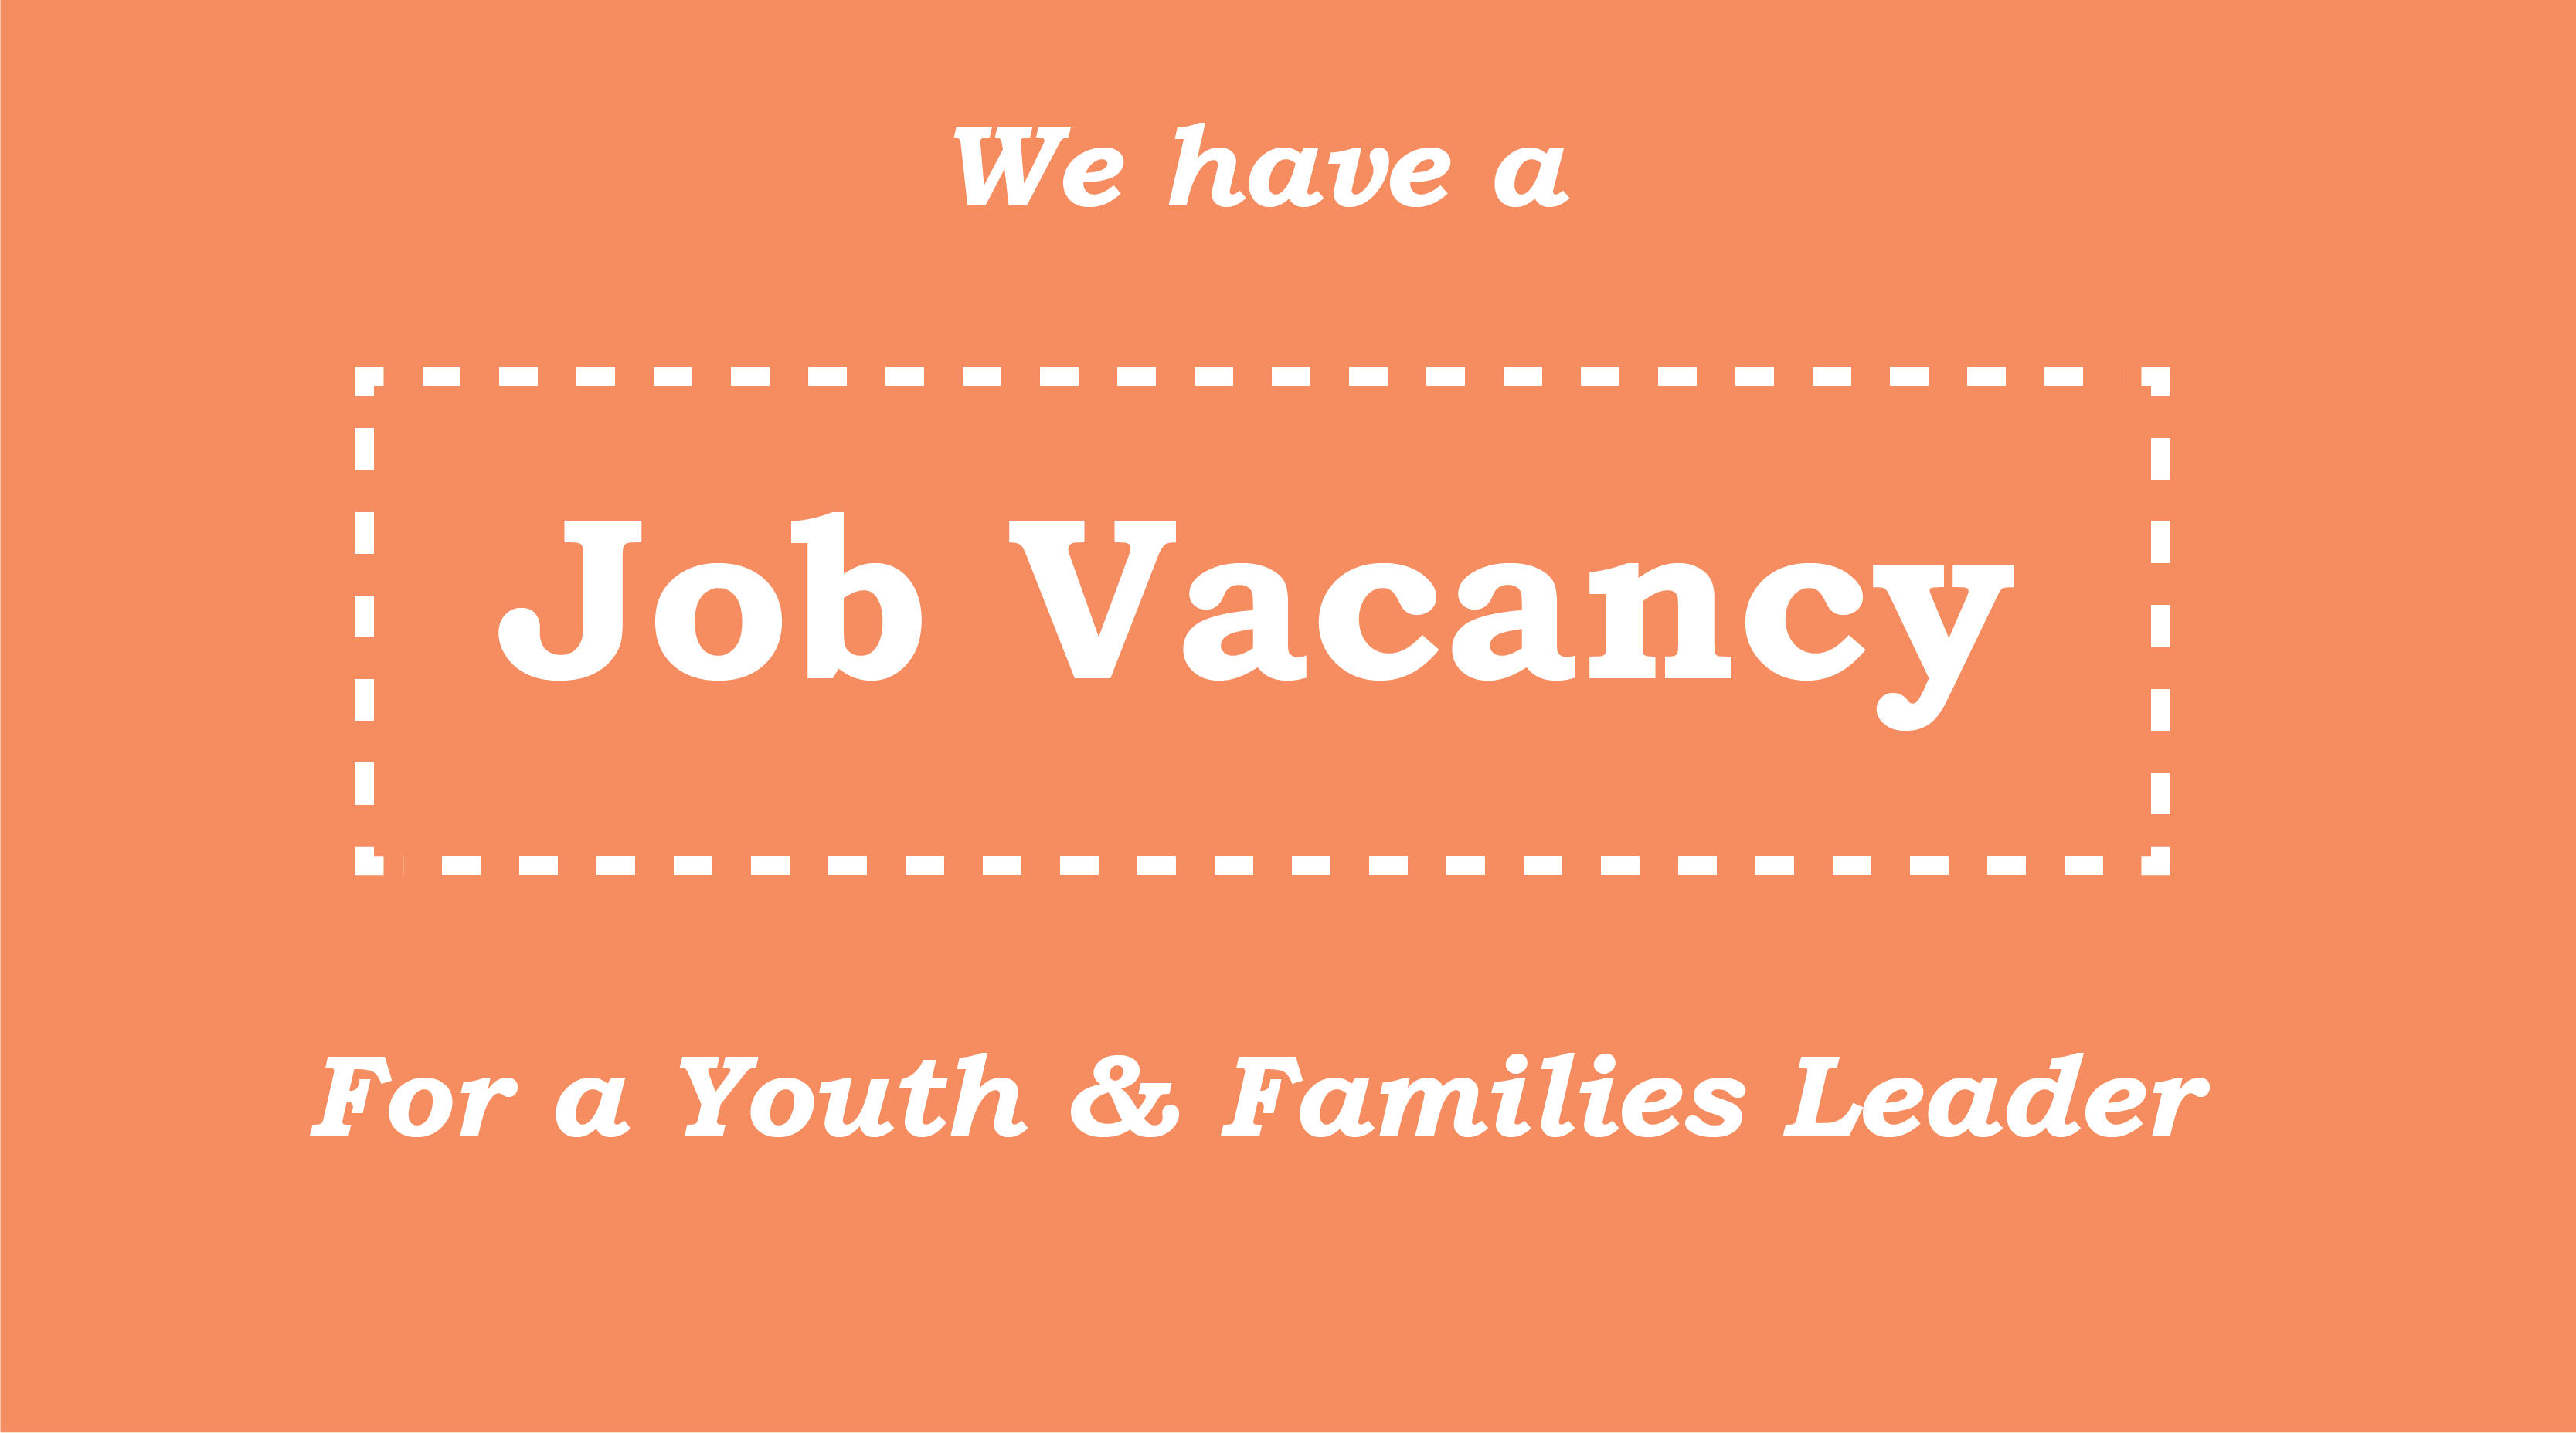 Youth worker vacancy